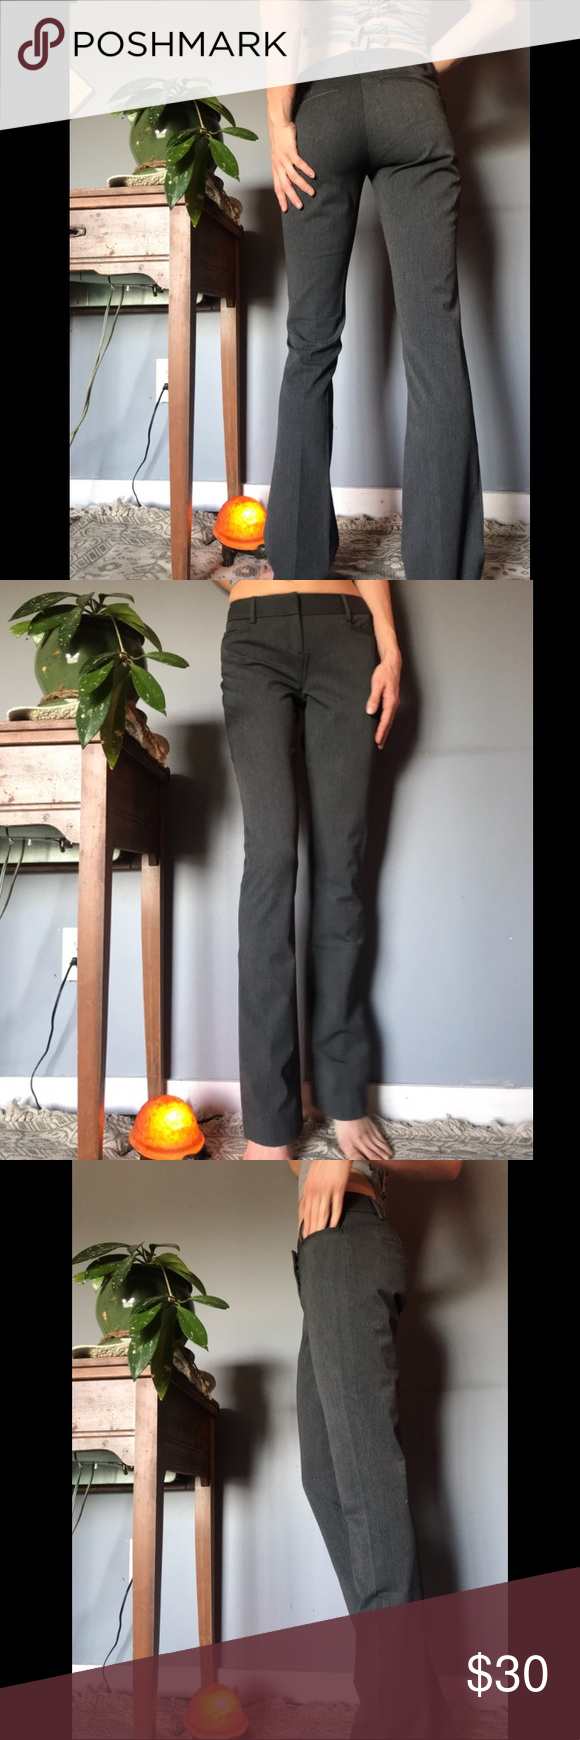 Dark Gray Express Columnist Beautiful dark gray work pants worn on a few occasions. Brand is Express, size is double zero (00). Sooo soft and stretchy. I guarantee you will love them. Express Pants Boot Cut & Flare